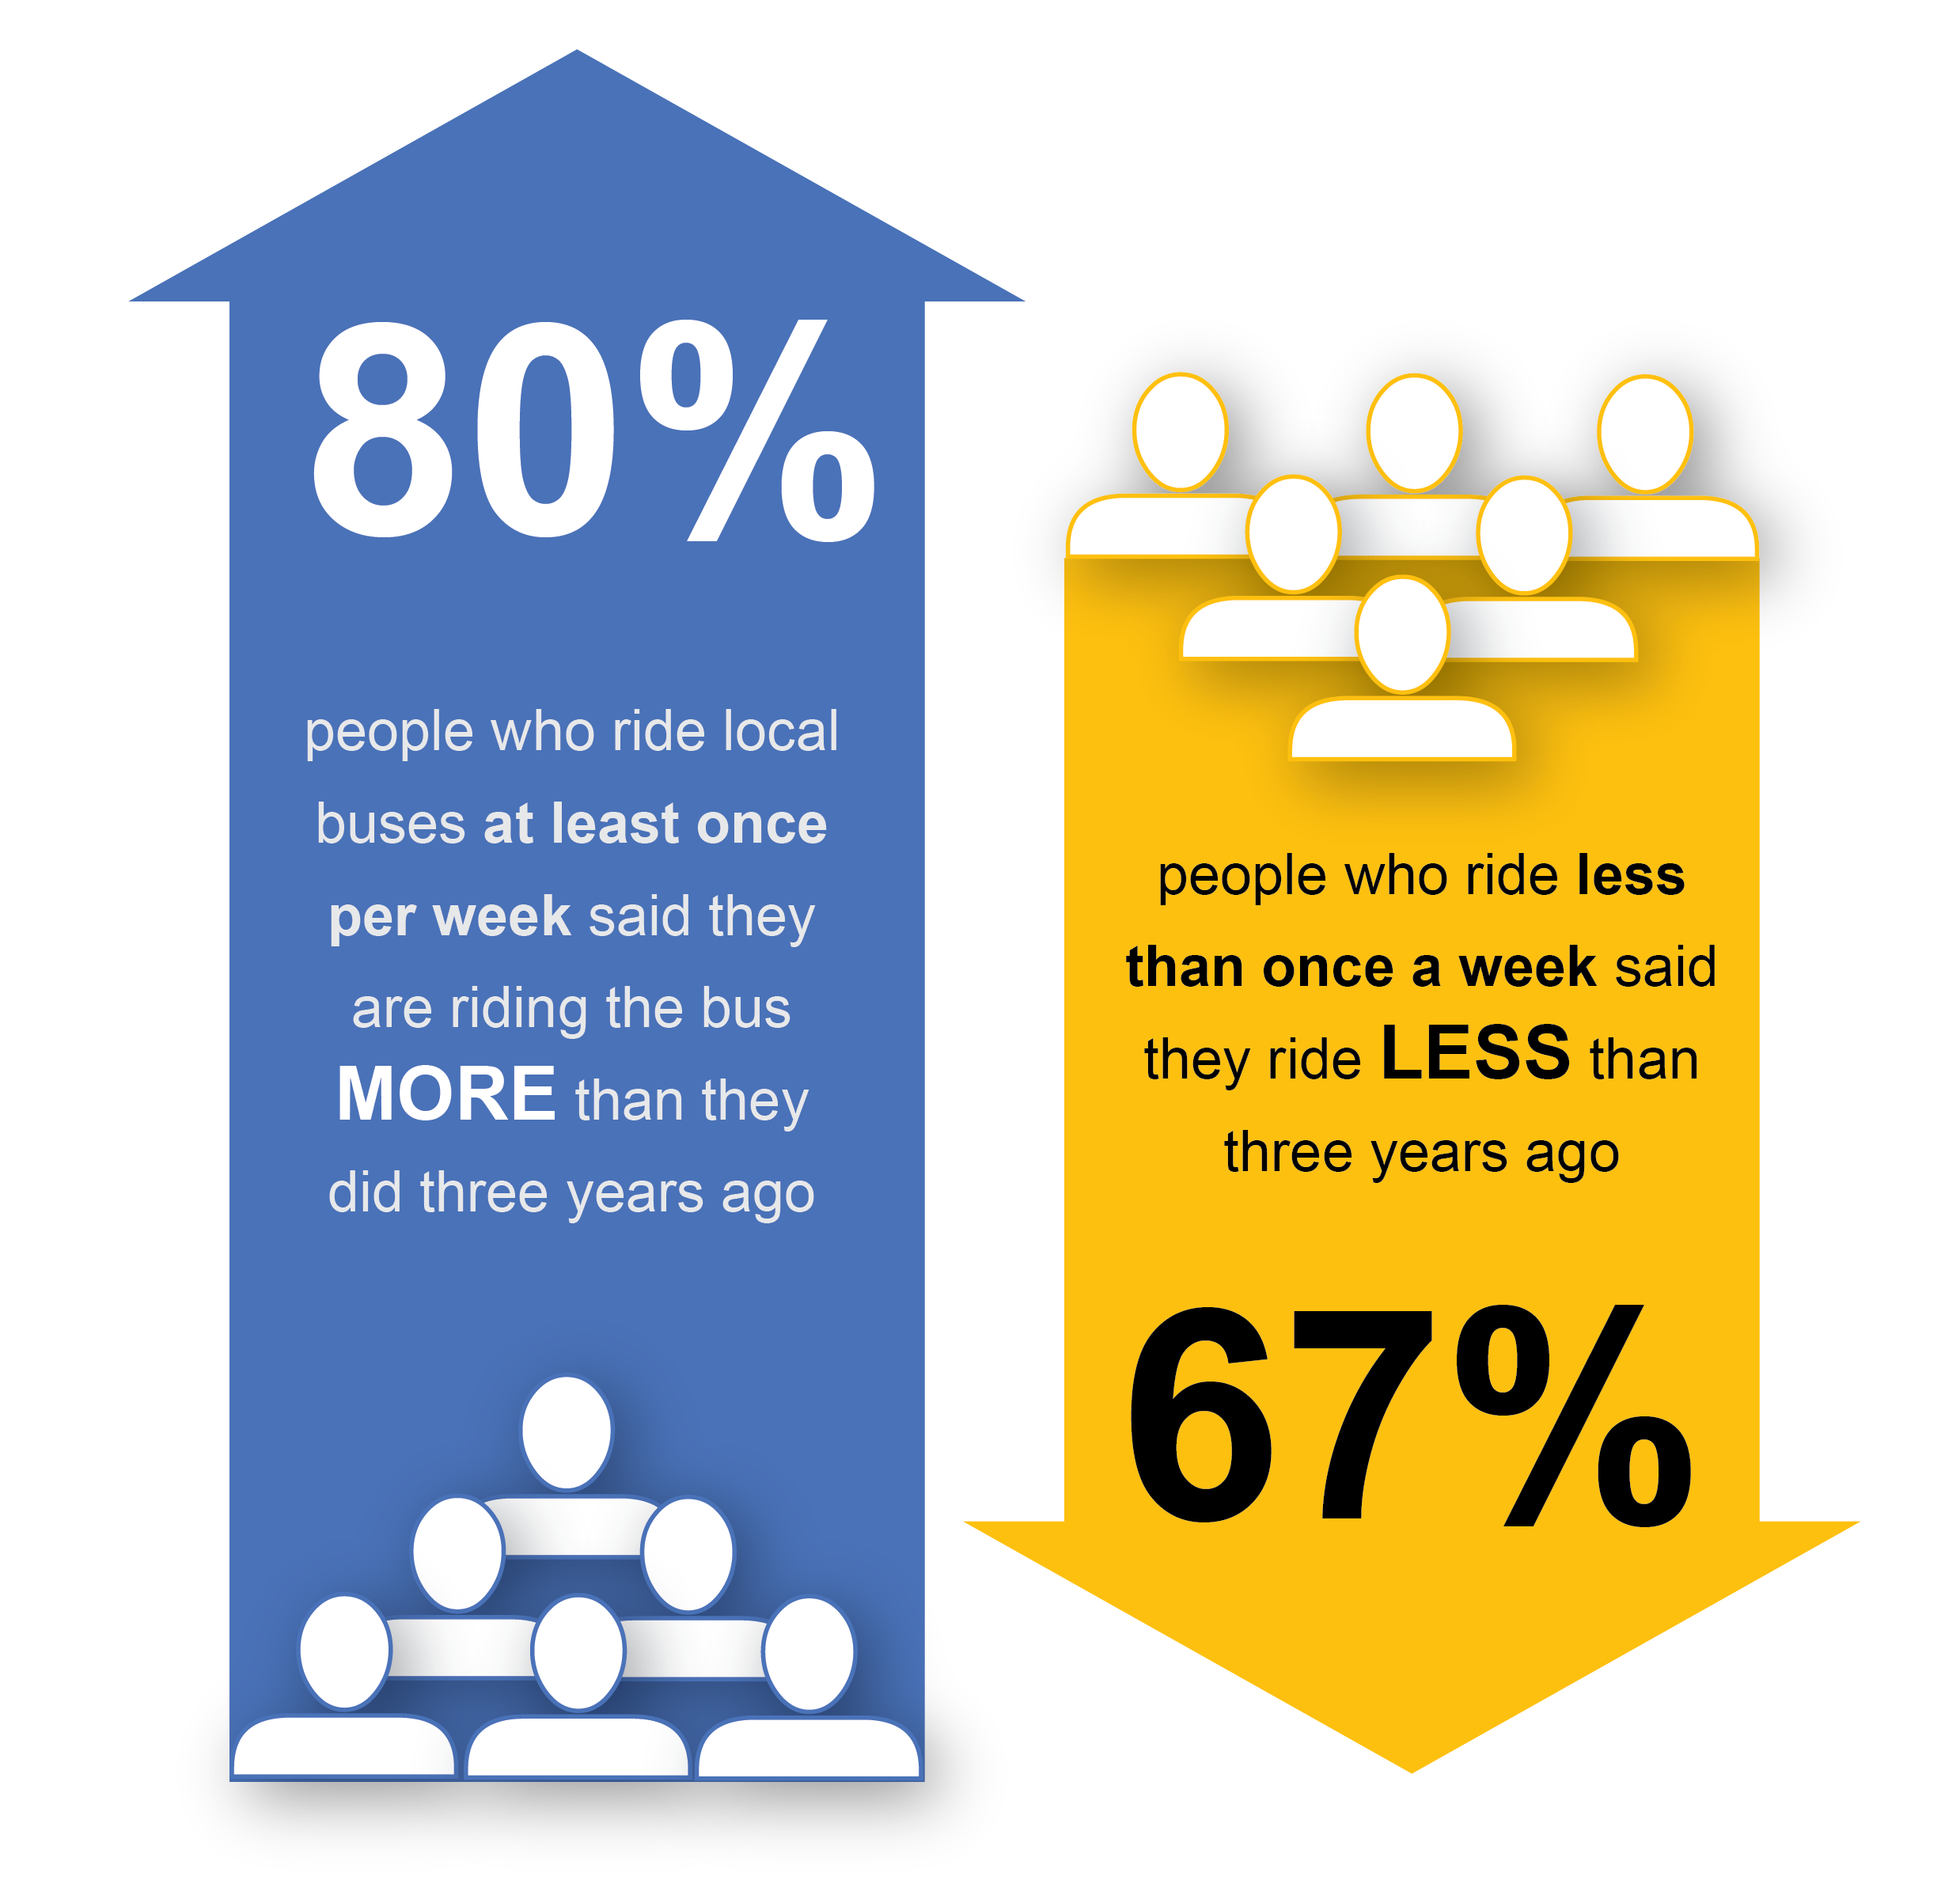 This graphic uses arrow to show that 80% of people who ride local buses at least once per week said they are riding the bus more than they did three years ago. However, sixty-seven percent of people who ride the bus less than once per week said they currently ride less than three years ago.